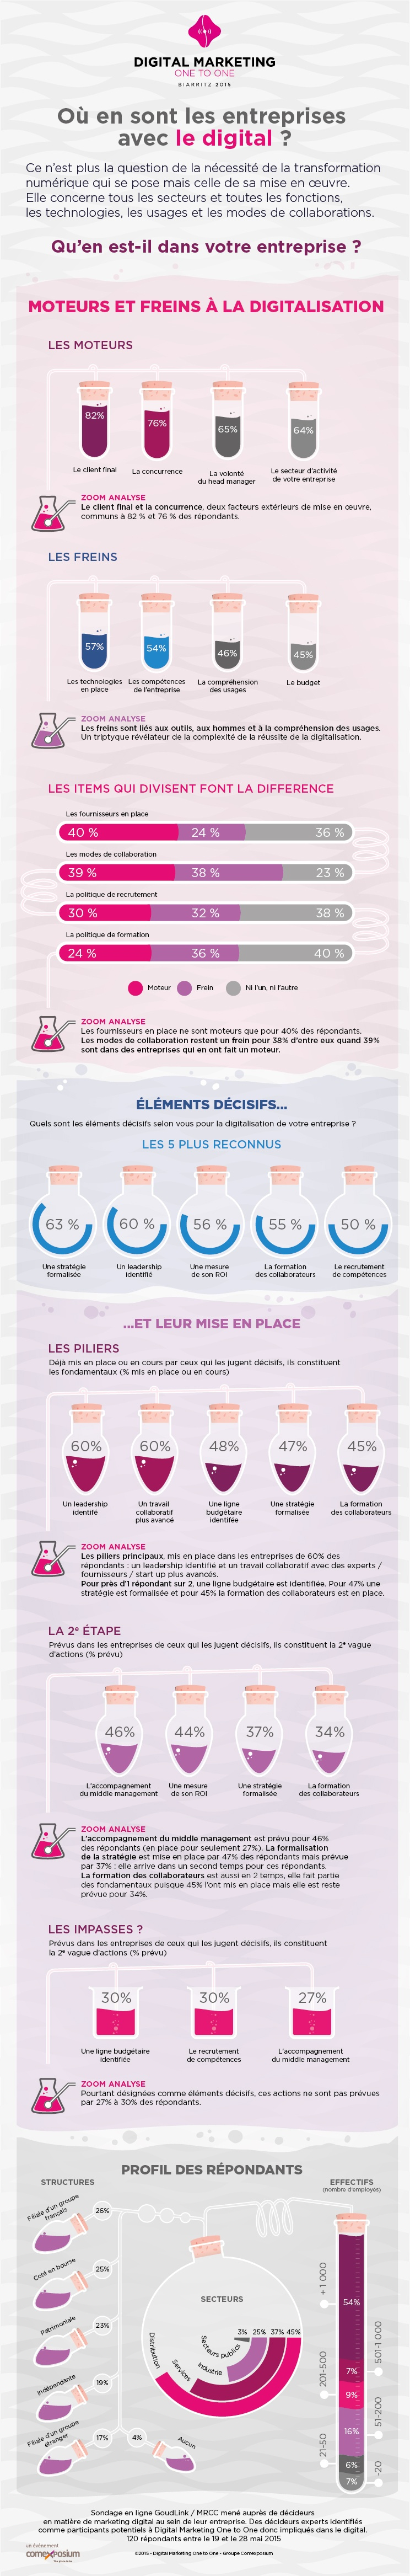 DM1to1-15-Infographie-BD-01